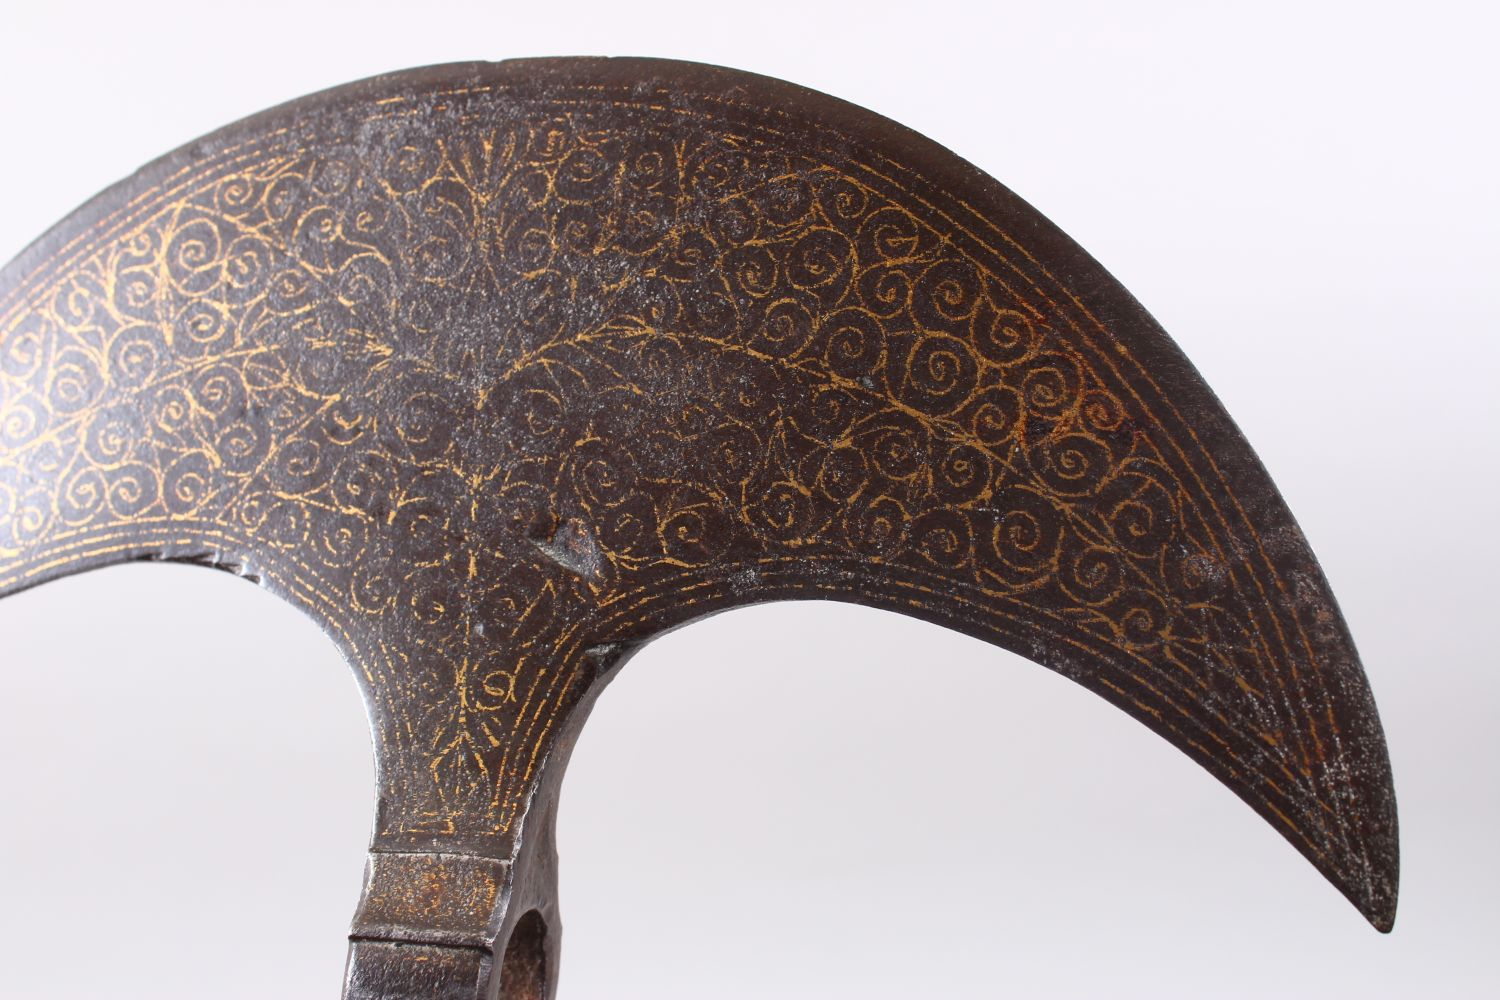 Lot 231 - A RARE 16TH - 17TH CENTURY OTTOMAN GOLD INLAID DOUBLE HEADED AXE, 24.5cm.